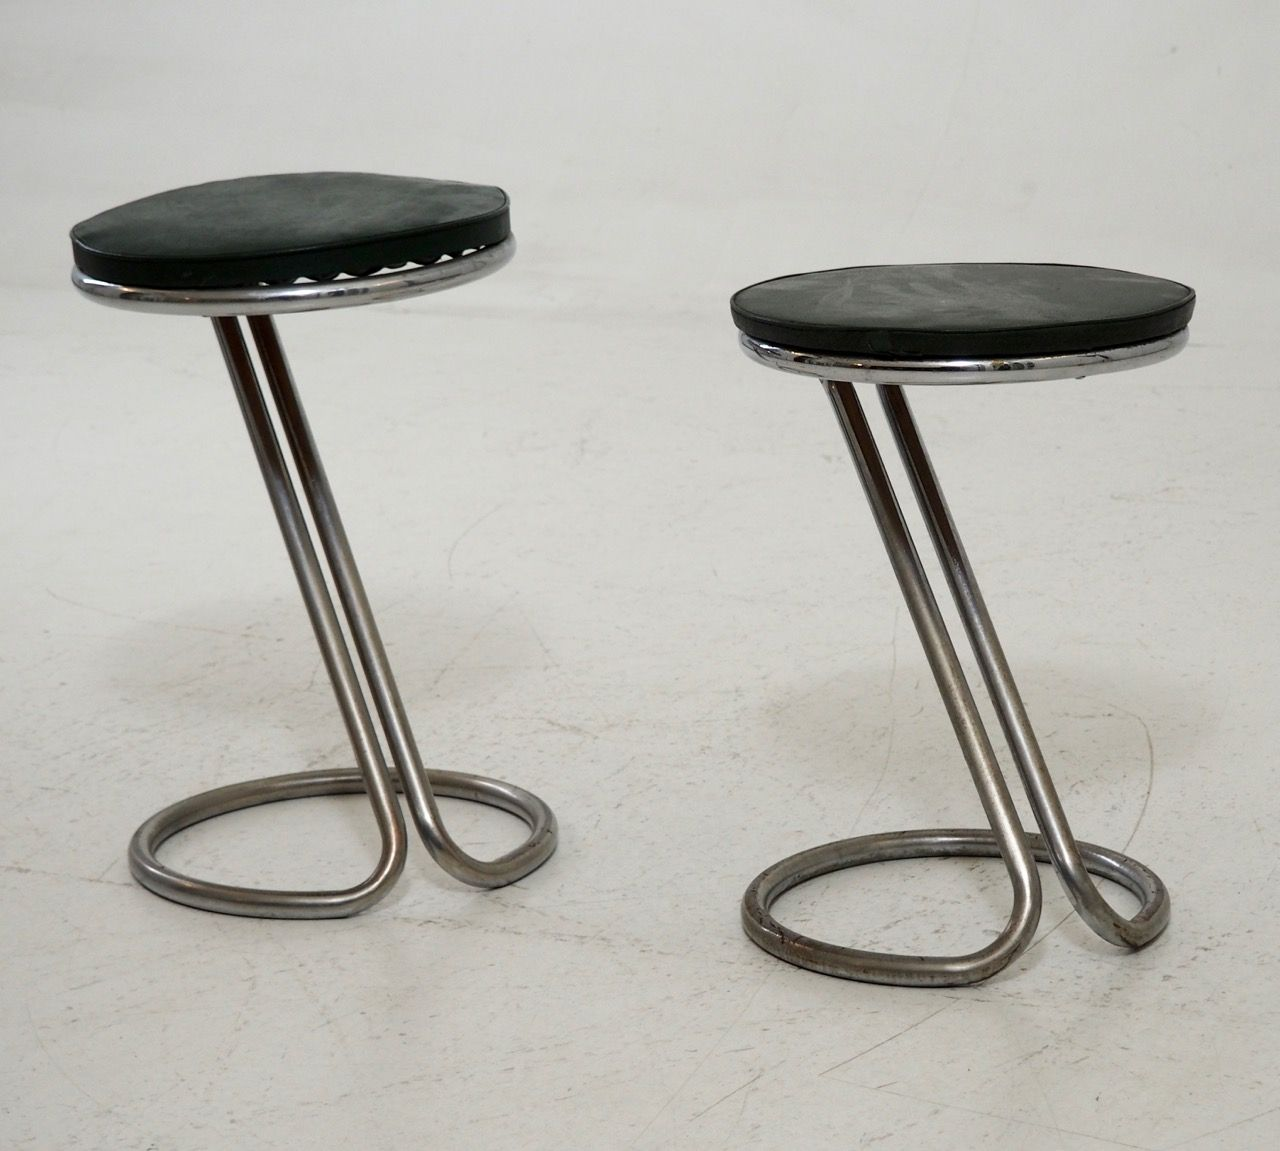 Vintage Art Deco Chromed Steel Piano Stools Set of 2 & Vintage Art Deco Chromed Steel Piano Stools Set of 2 for sale at ... islam-shia.org